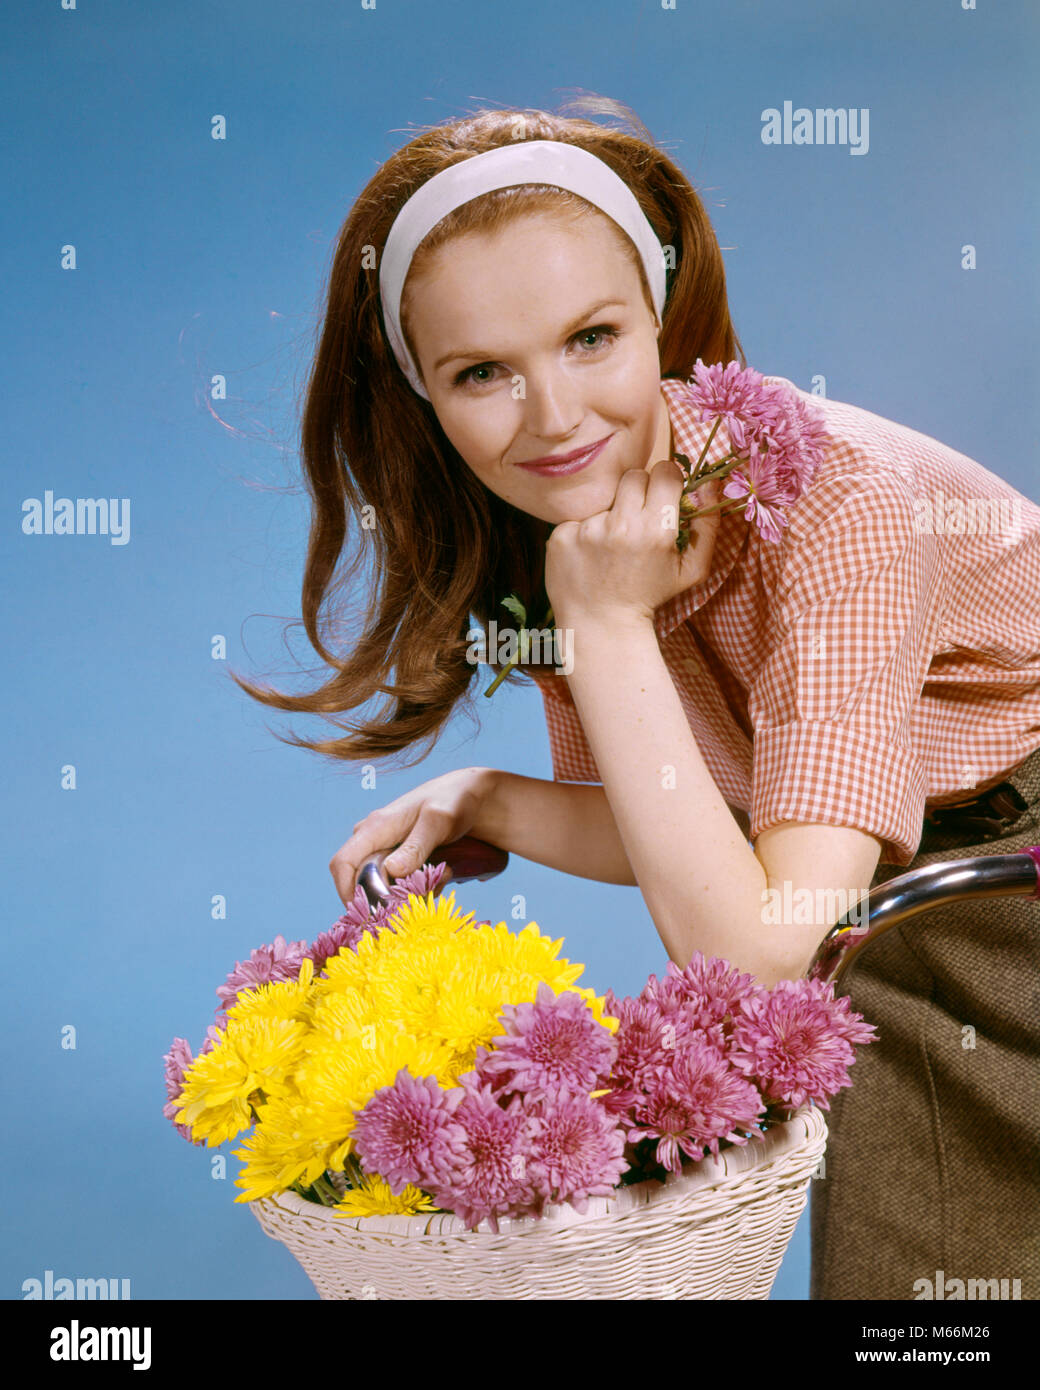 1960s SMILING REDHEAD YOUNG WOMAN RIDING BICYCLE WITH BASKET OF FLOWERS LOOKING AT CAMERA - kf5477 HAR001 HARS FEMALES - Stock Image